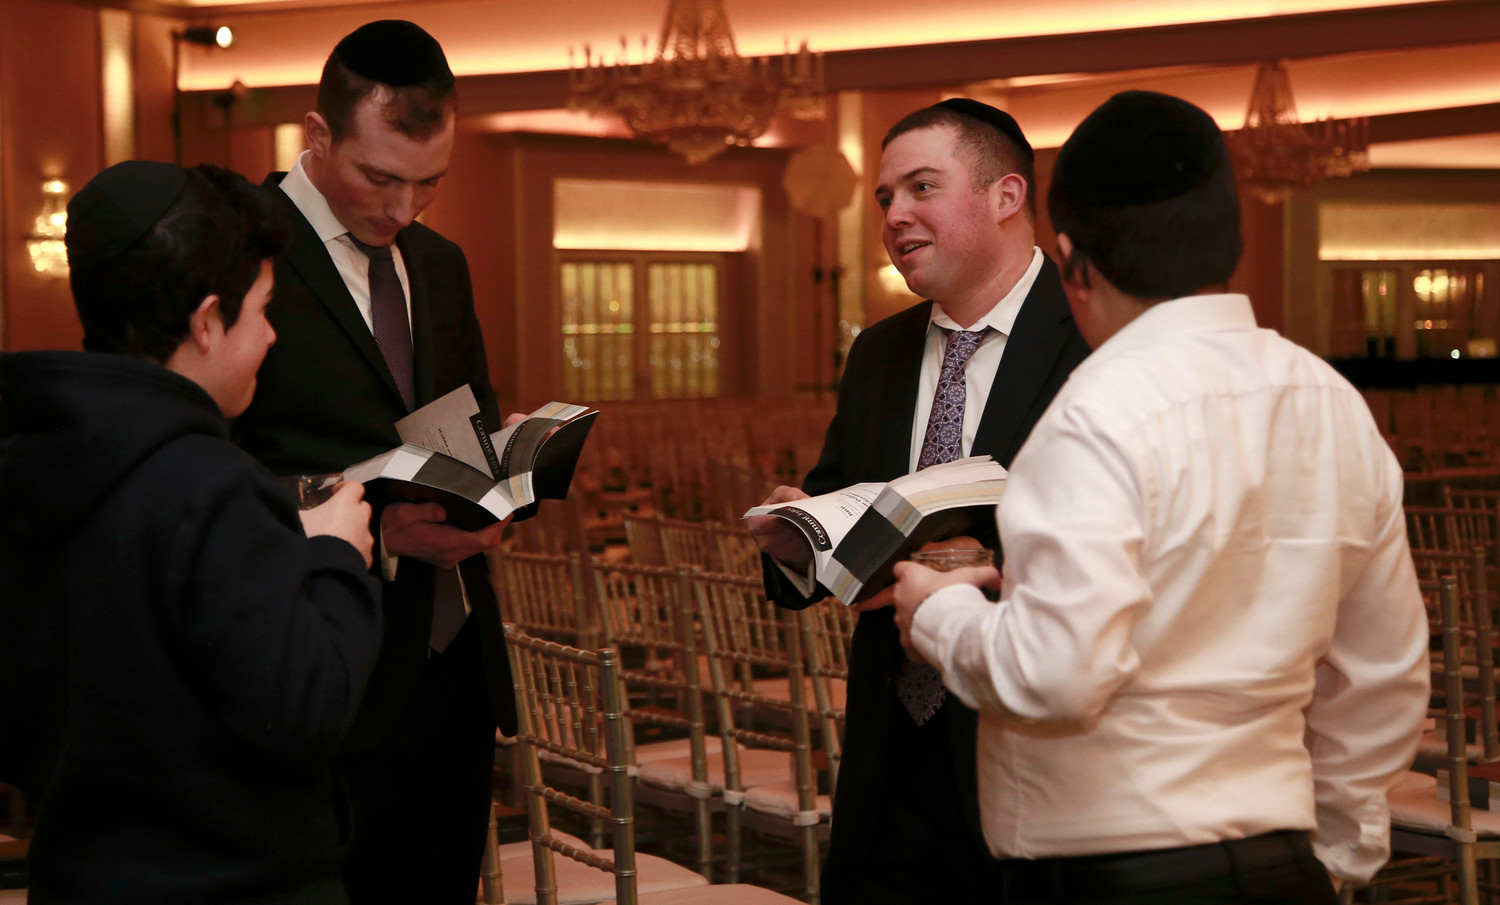 Yossi Riesman, Aaron Guttman, Harry Swambart and Dovid Barkinay browse the gala's journal, filled with 900 pages of ads placed by Achiezer supporters.